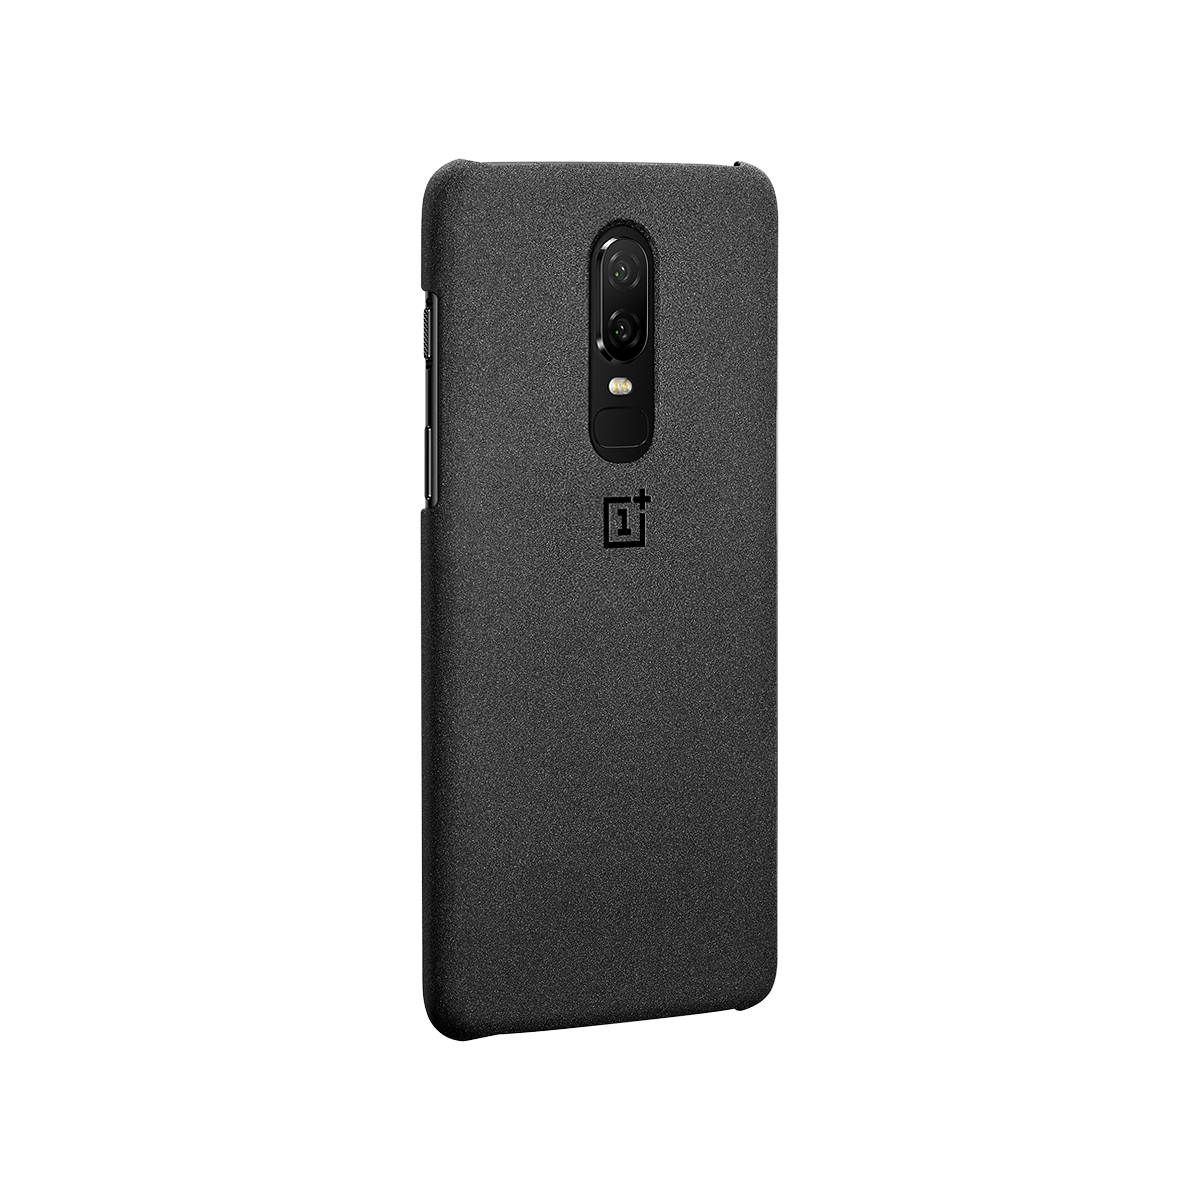 lowest price 55856 132a8 OnePlus 6 Protective Case - OnePlus (India)